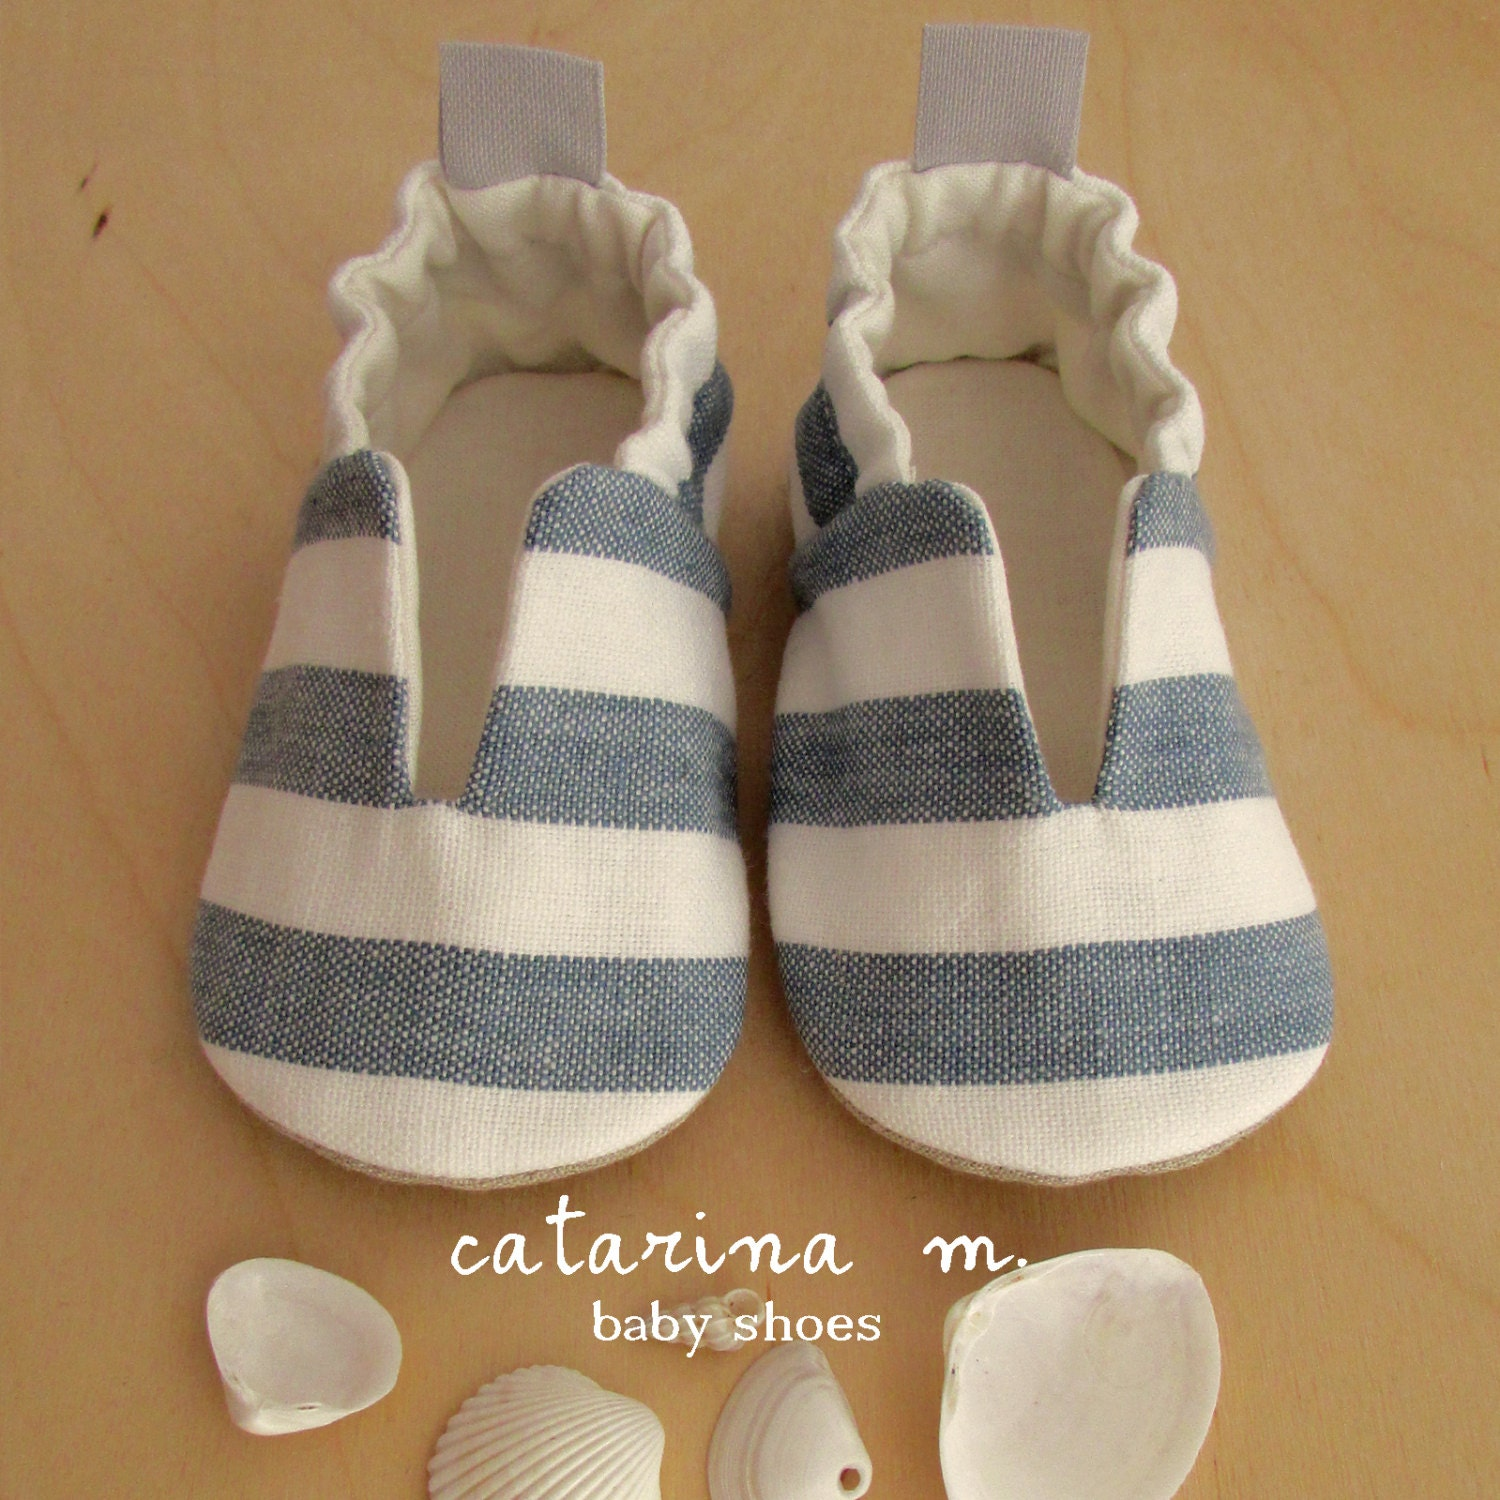 SEWING PATTERN Baby Shoe Model n 4 Catarina M from